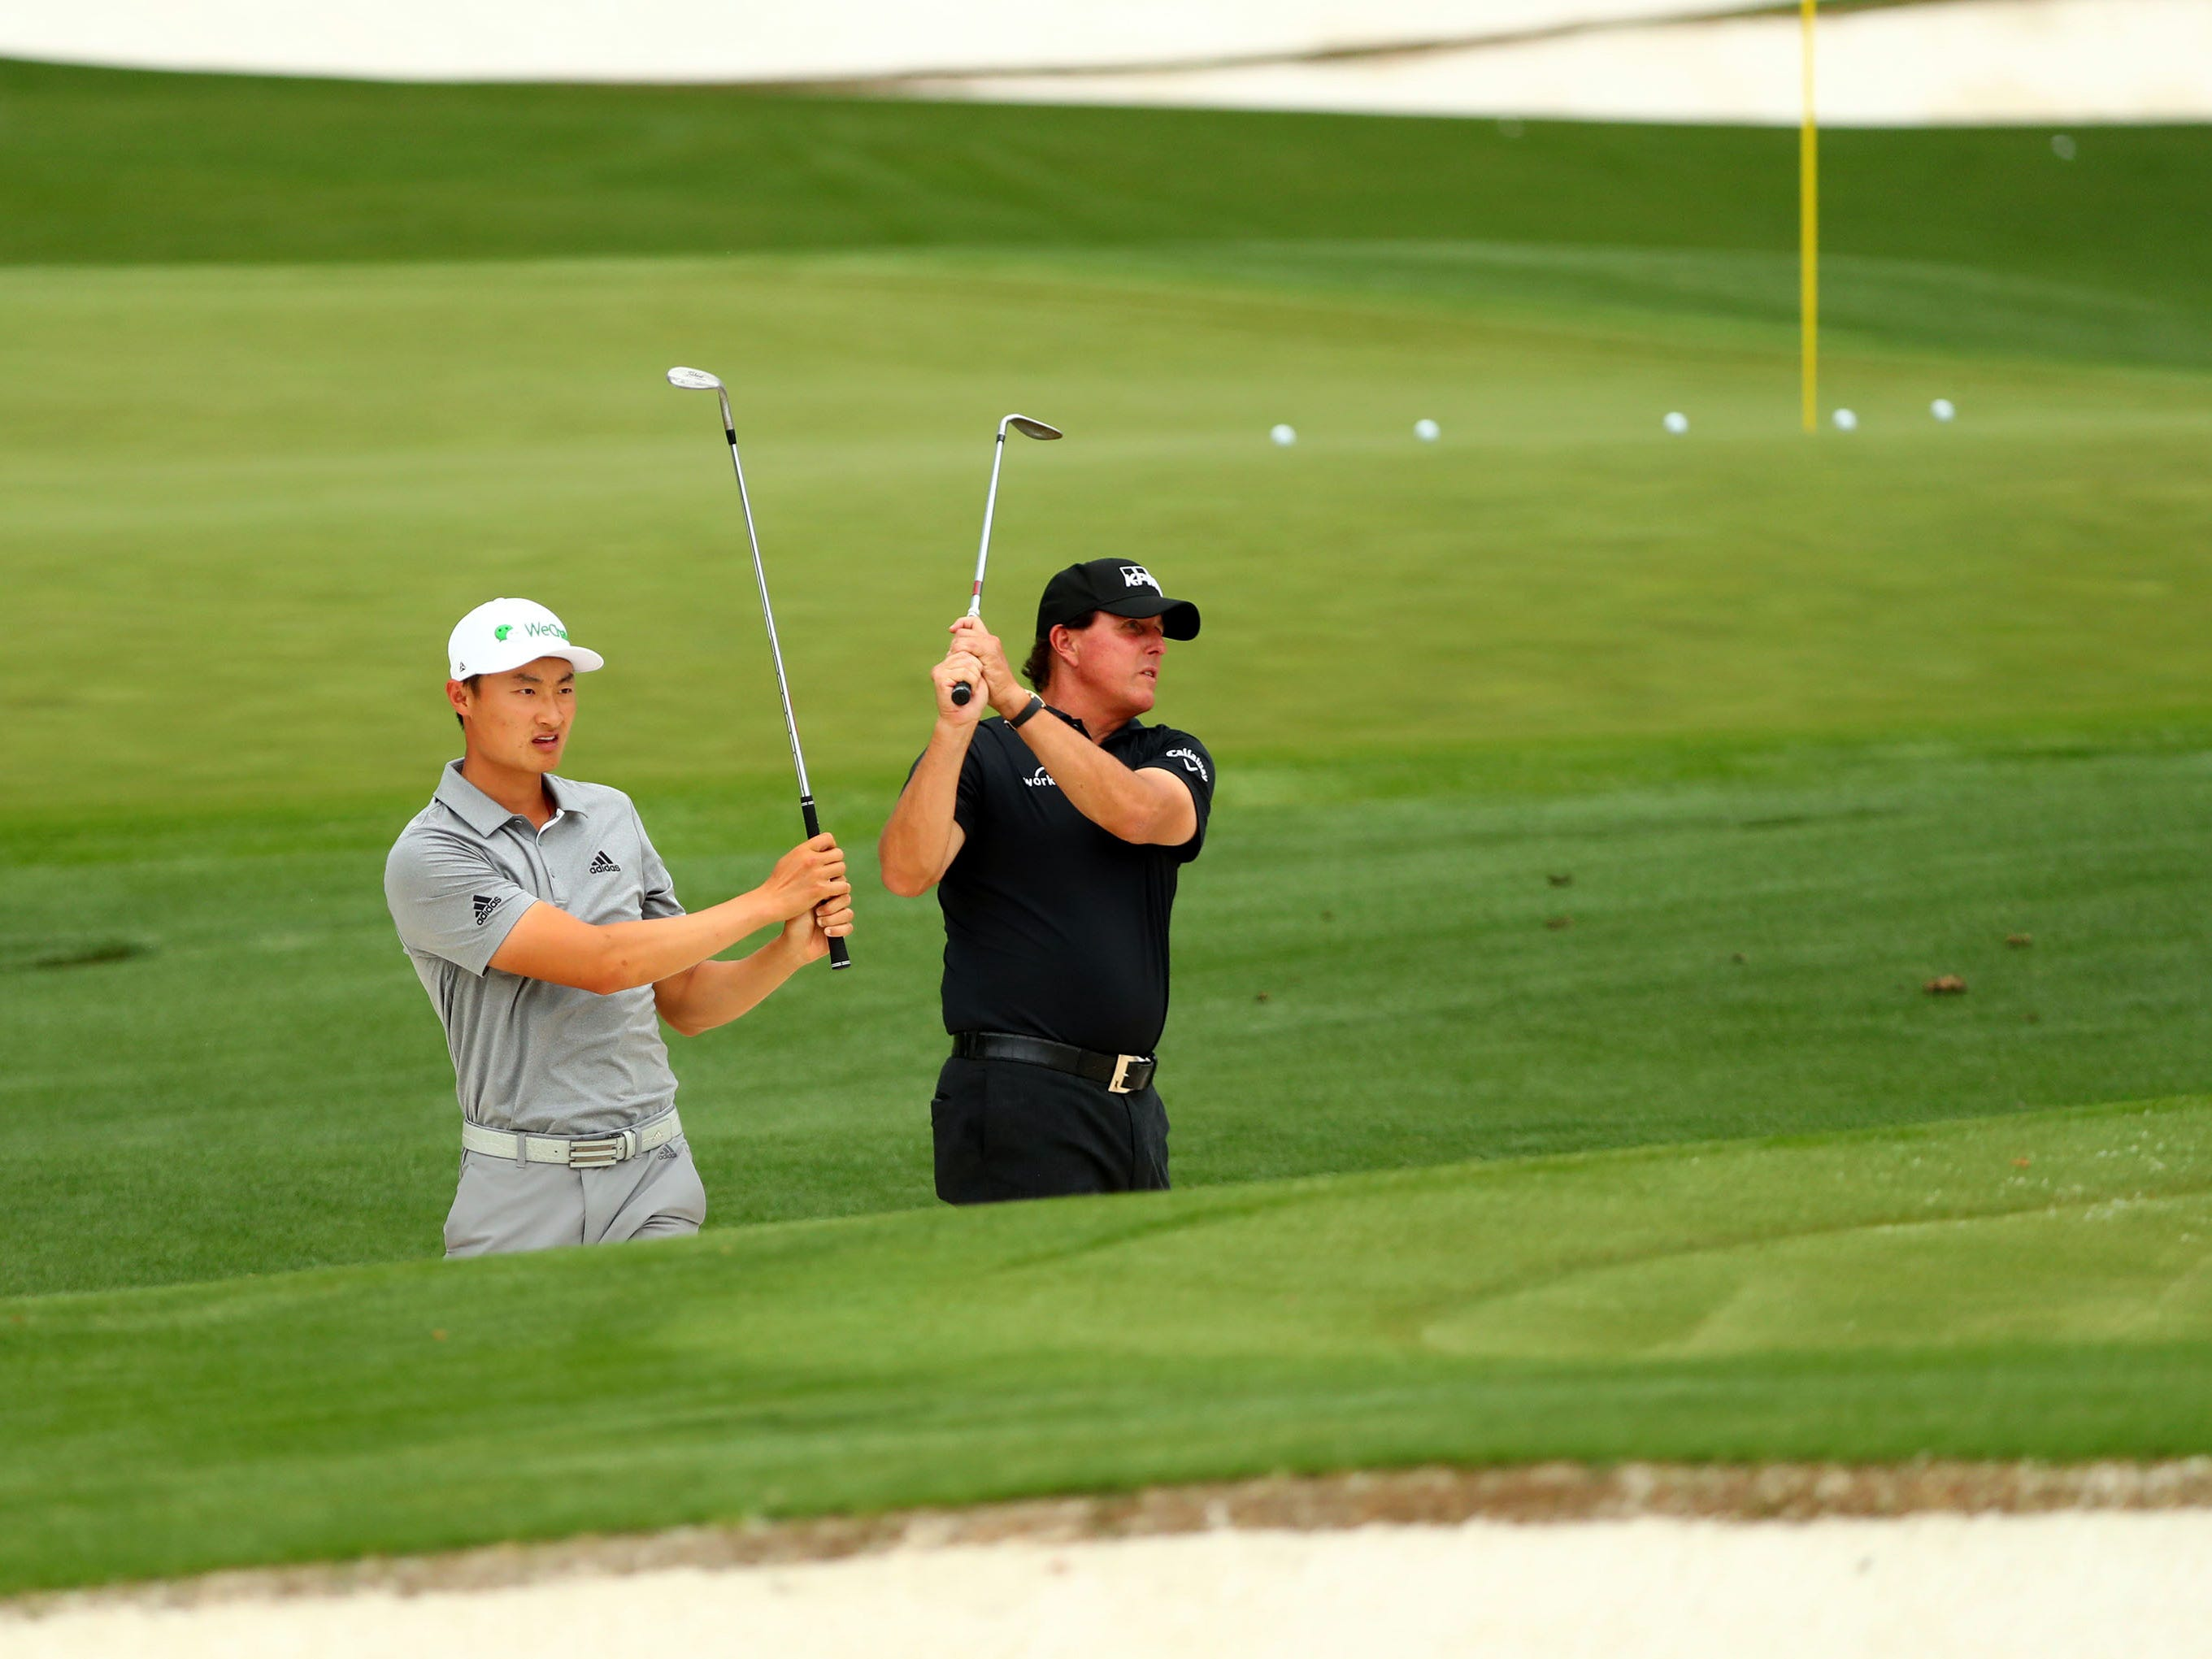 Haotong Li of China and Masters champion Phil Mickelson (right) blast from a bunker on the practice facility during a practice round for the Masters golf tournament at Augusta National Golf Club.